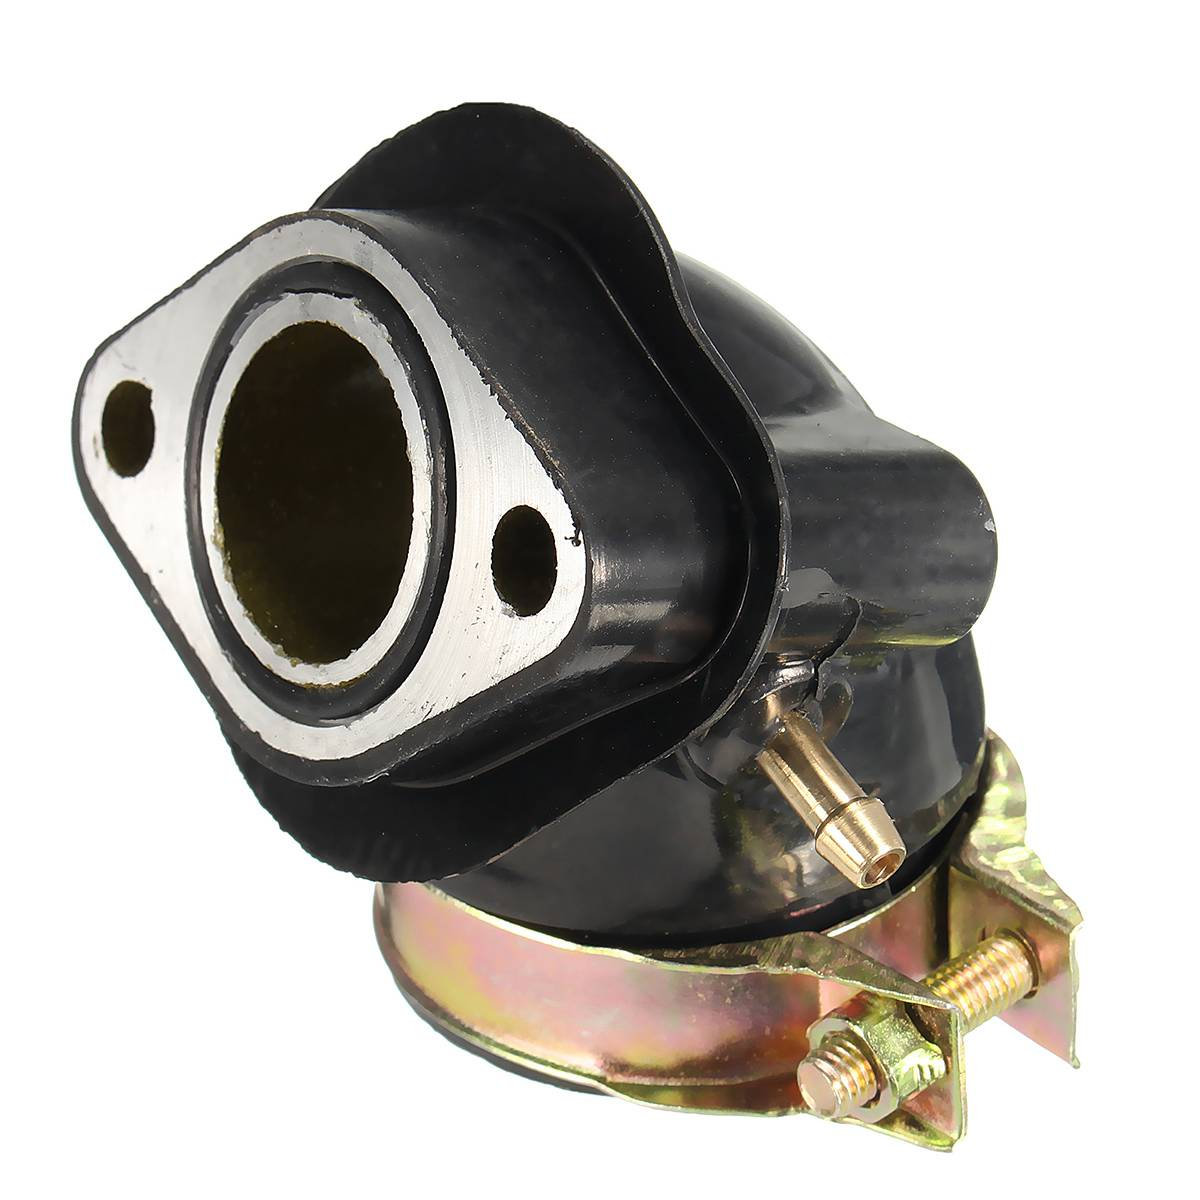 XLJOY 27mm Performance Racing Intake Manifold For GY6 125cc 150cc Chinese Moped Scooter Go Kart Buggy